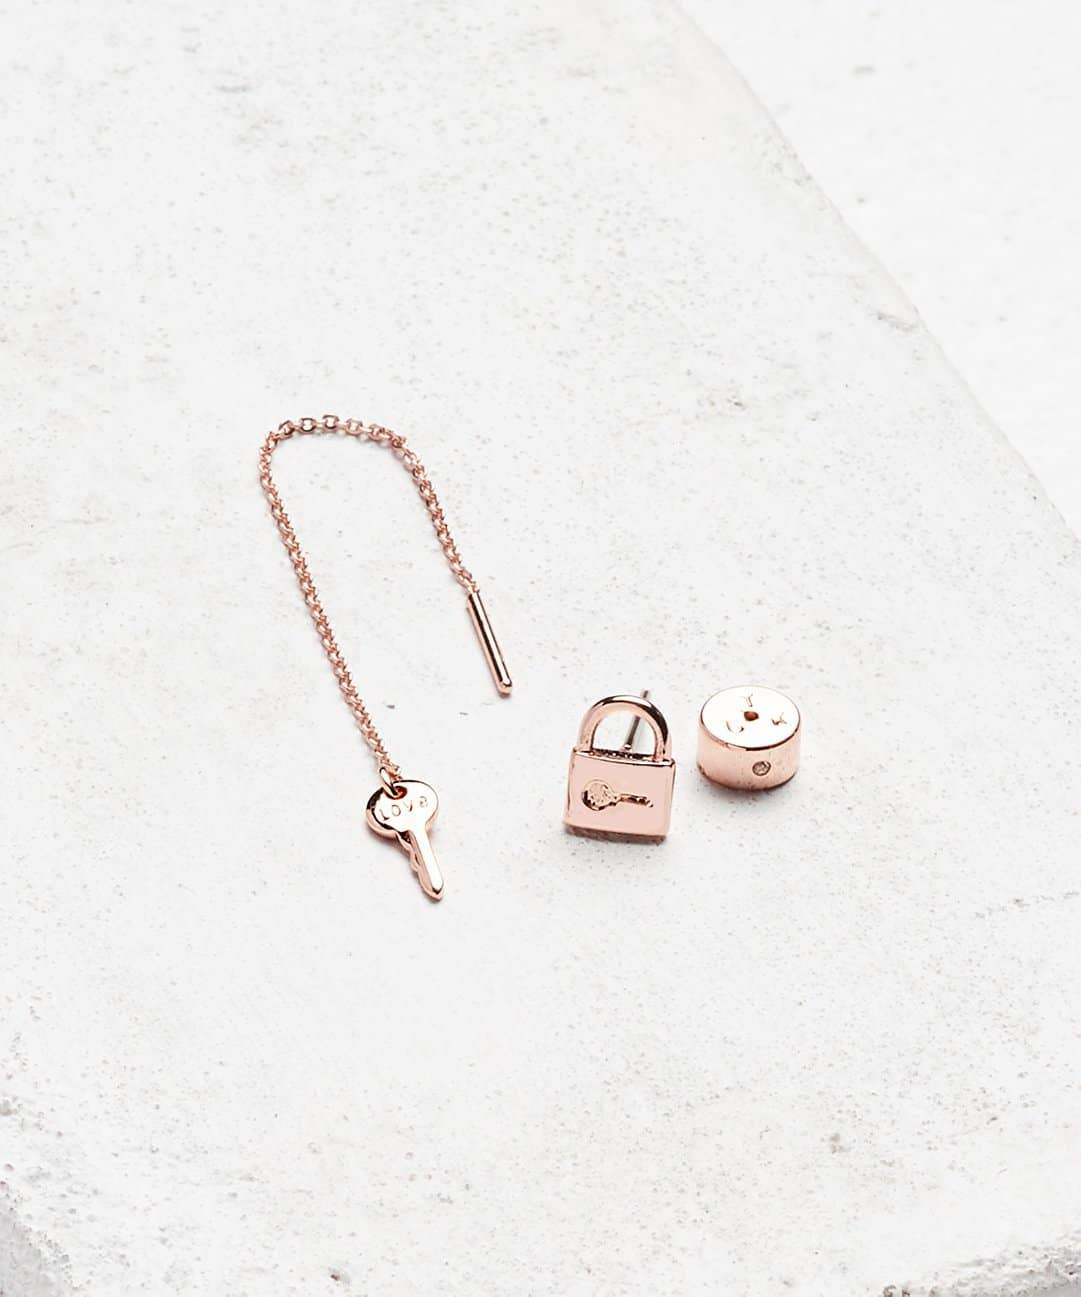 Rose Gold Mini Key Padlock and Threader Earring Set - DISCONTINUED 11/12/18 Earrings The Giving Keys LOVE Rose Gold